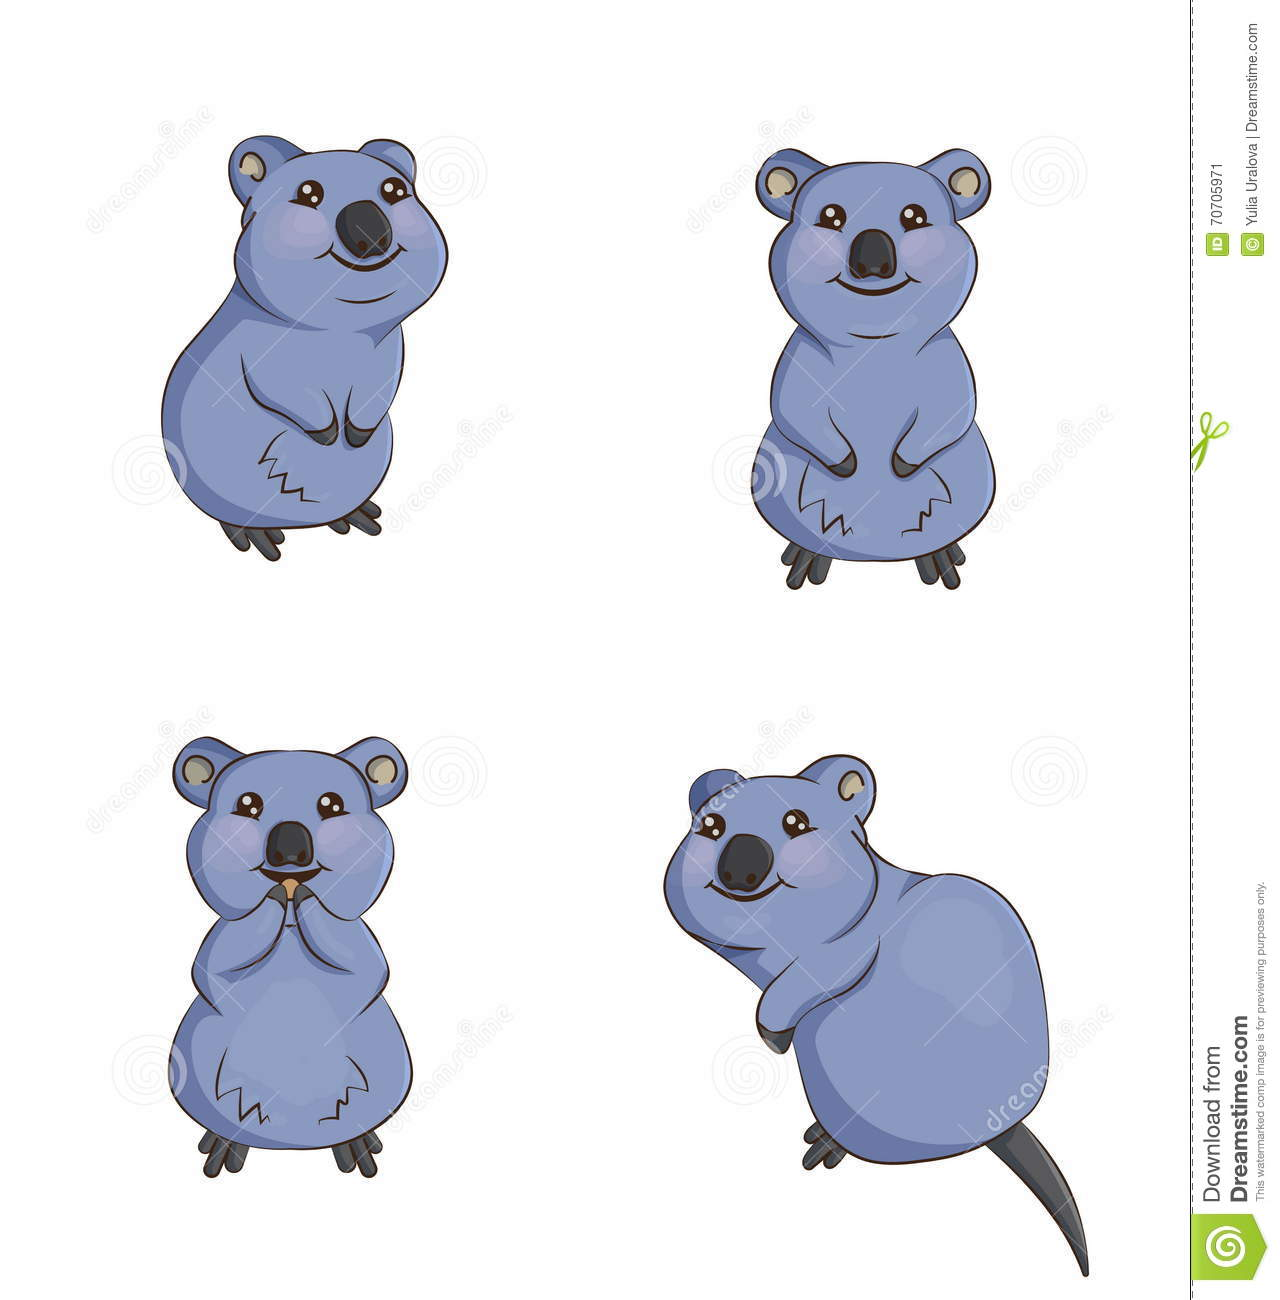 Quokka Clipart, Download Quokka Clipart For Free 2019